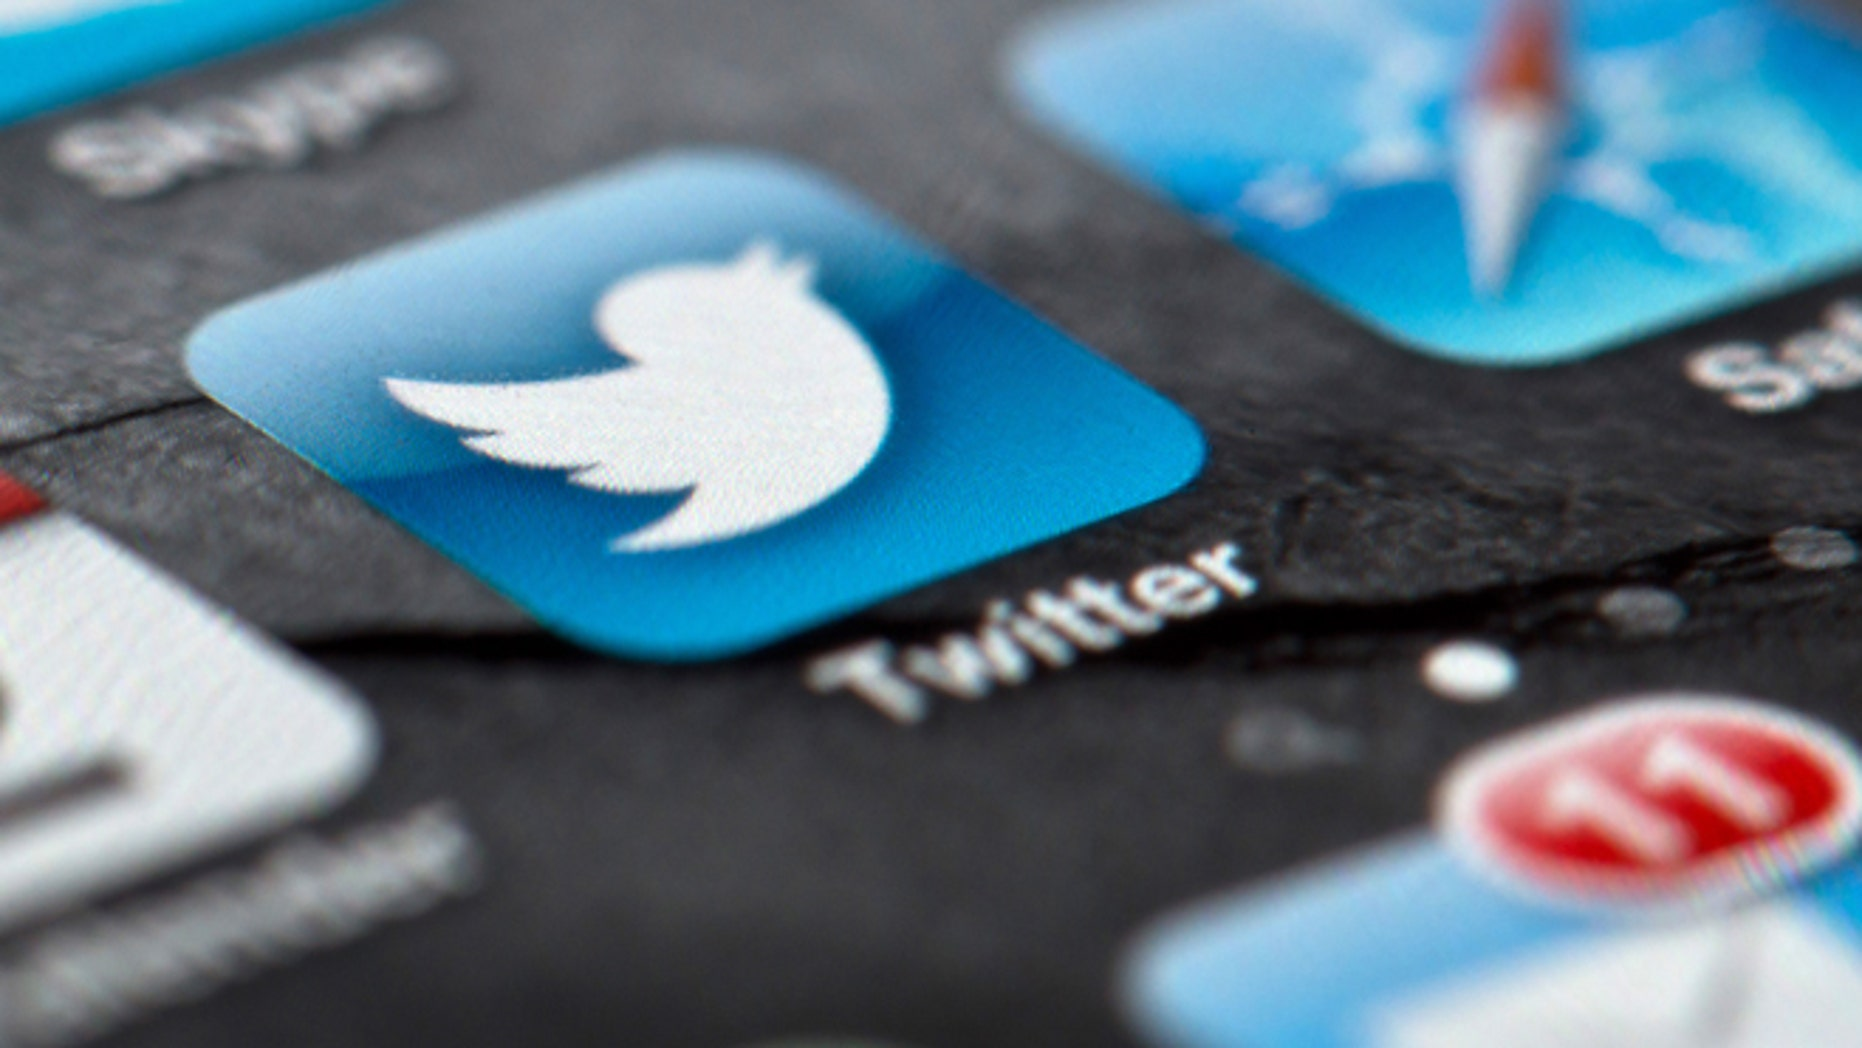 FILE - In this Feb. 2, 2013, file photo, a smartphone display shows the Twitter logo in Berlin, Germany, Twitter unsealed the documents Thursday, Oct. 3, 2013, for its planned initial public offering of stock and says it hopes to raise up to $1 billion. (AP Photo/dpa, Soeren Stache, File)